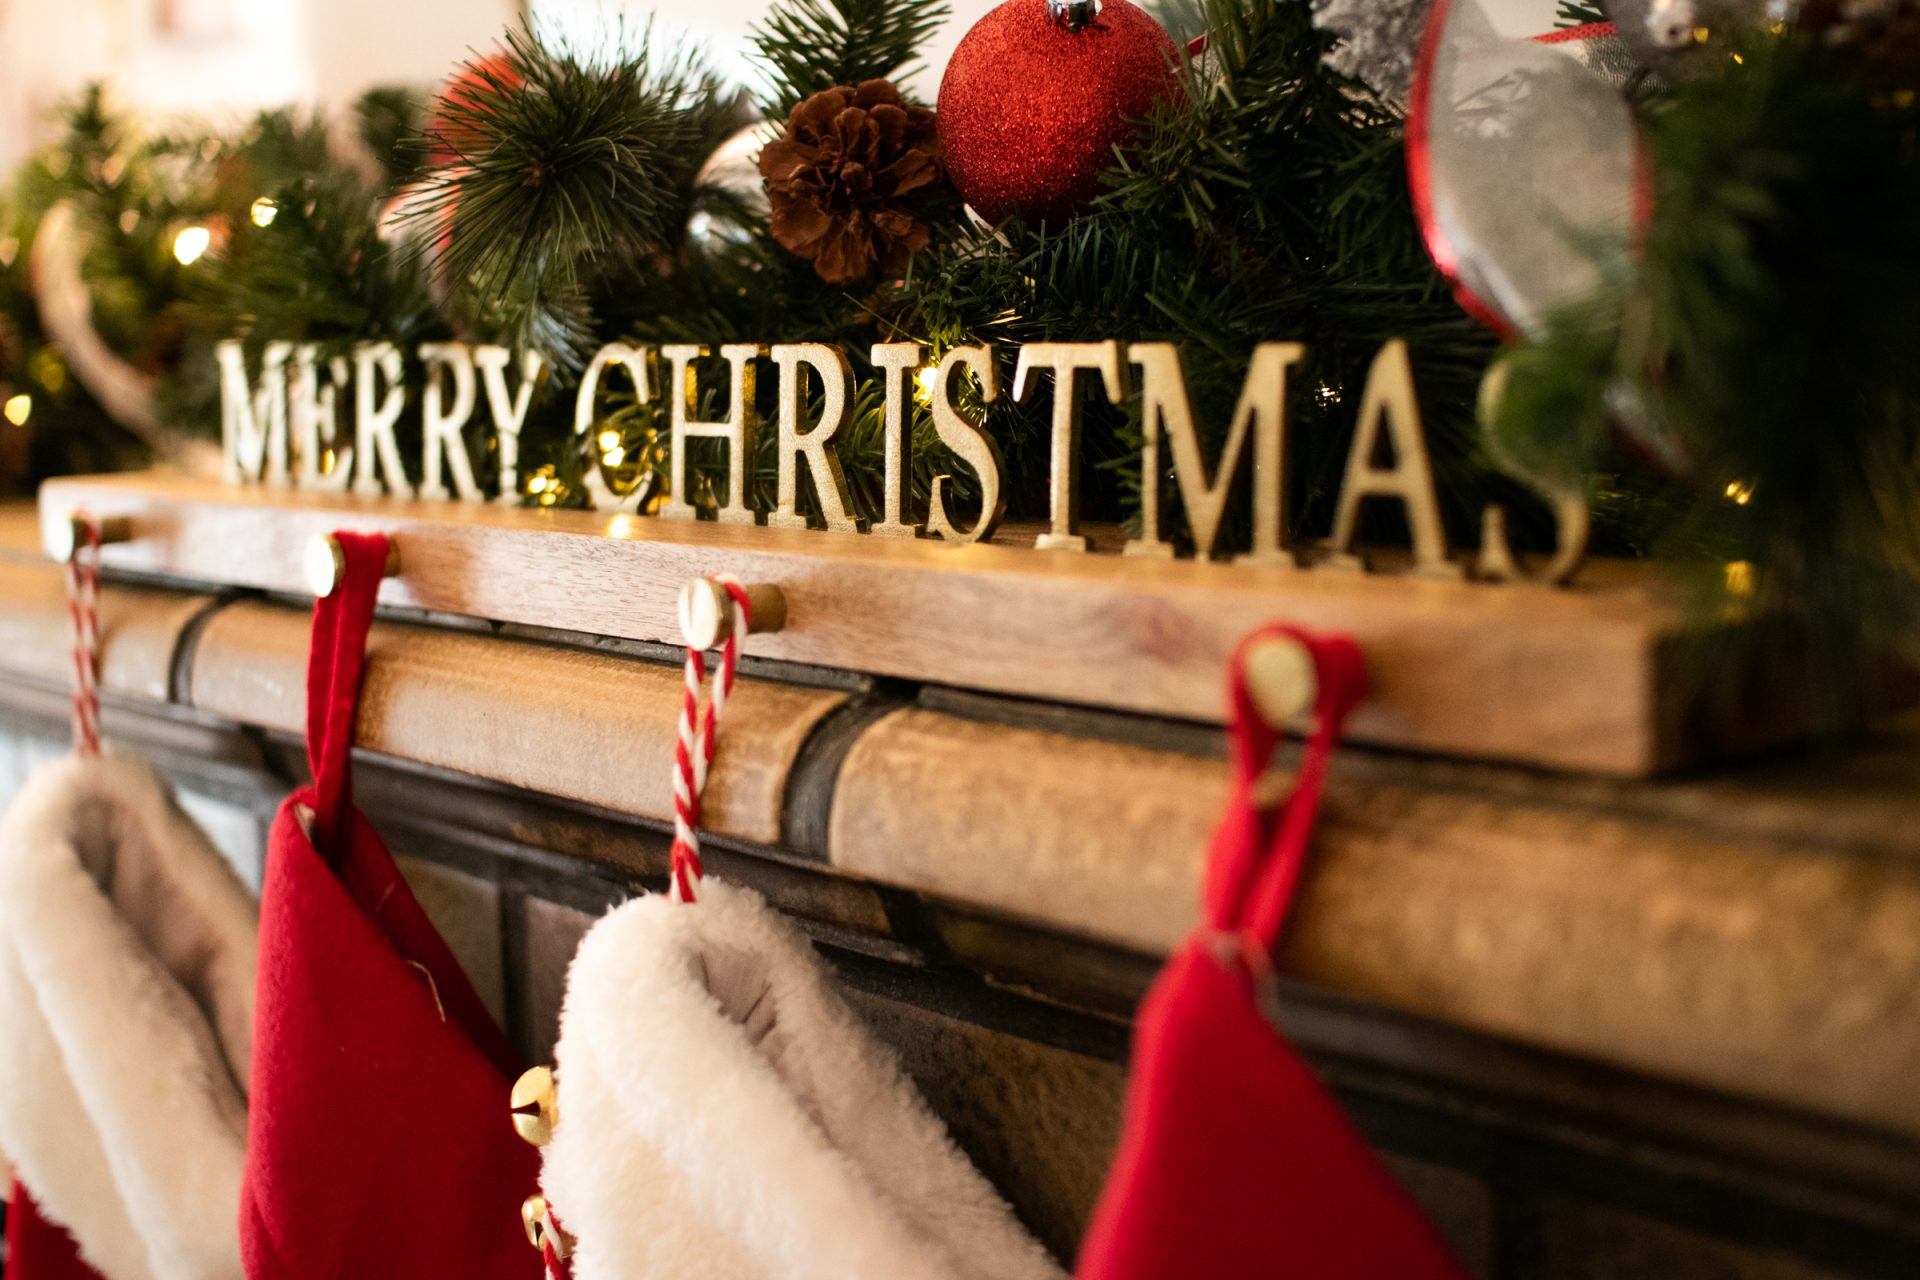 Christmas Decorations And Stocking Holder On Mantel